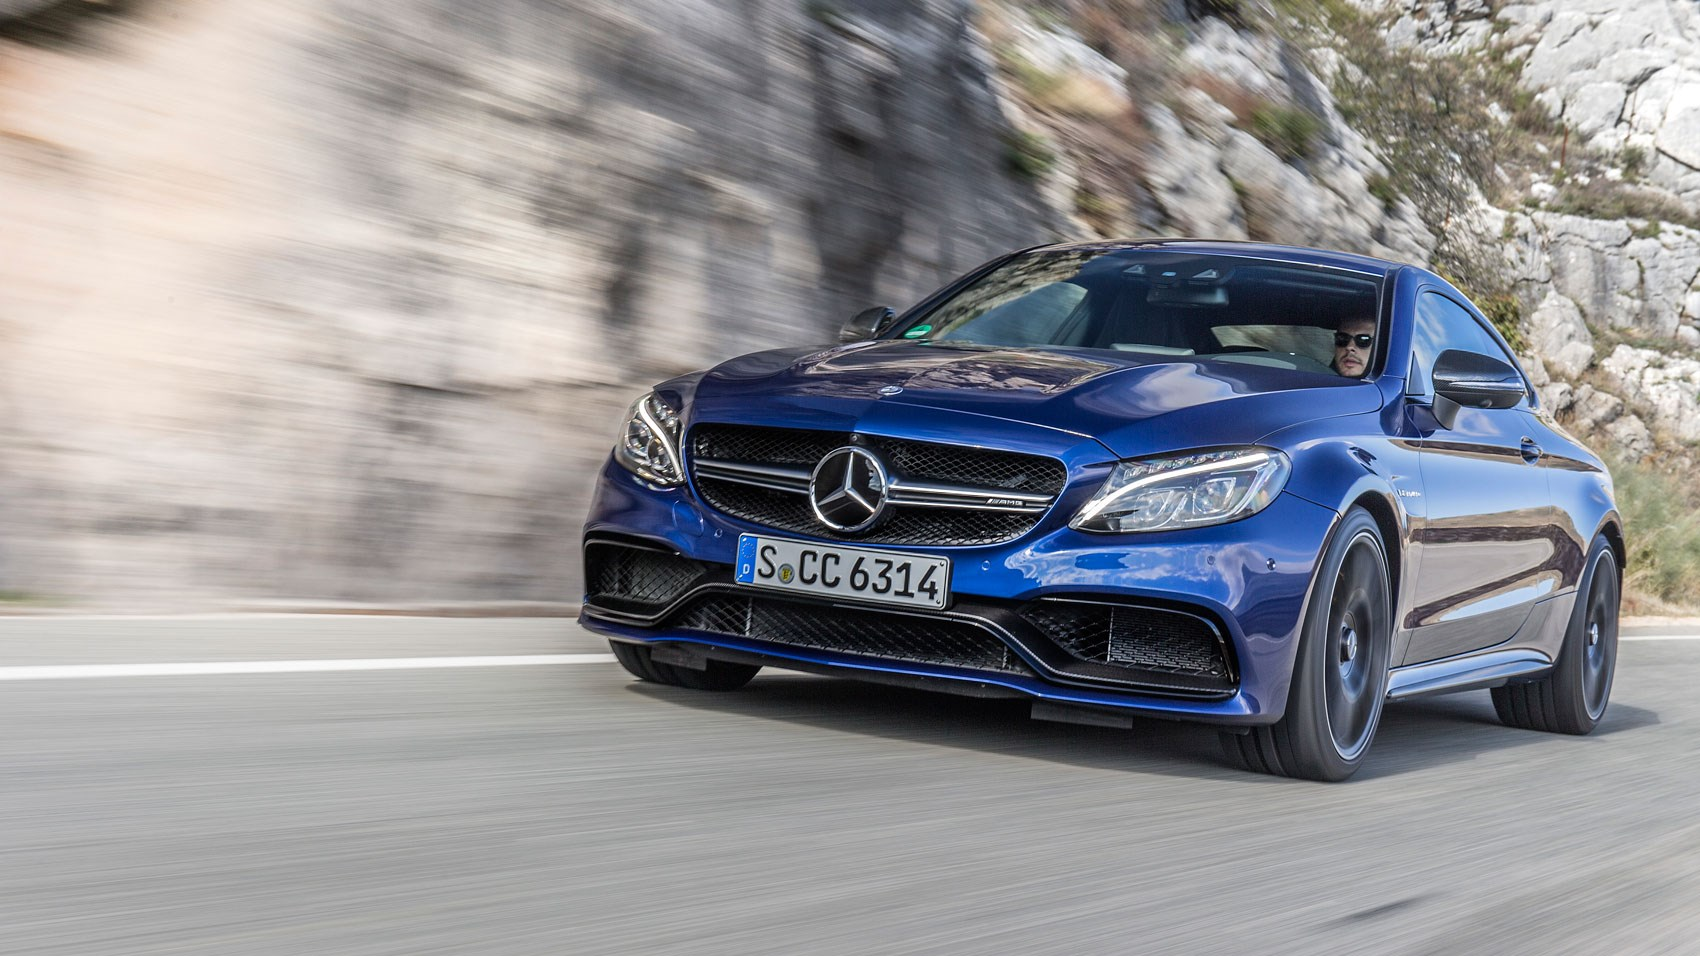 Mercedes Amg C63 S Coupe 2015 Review Car Magazine